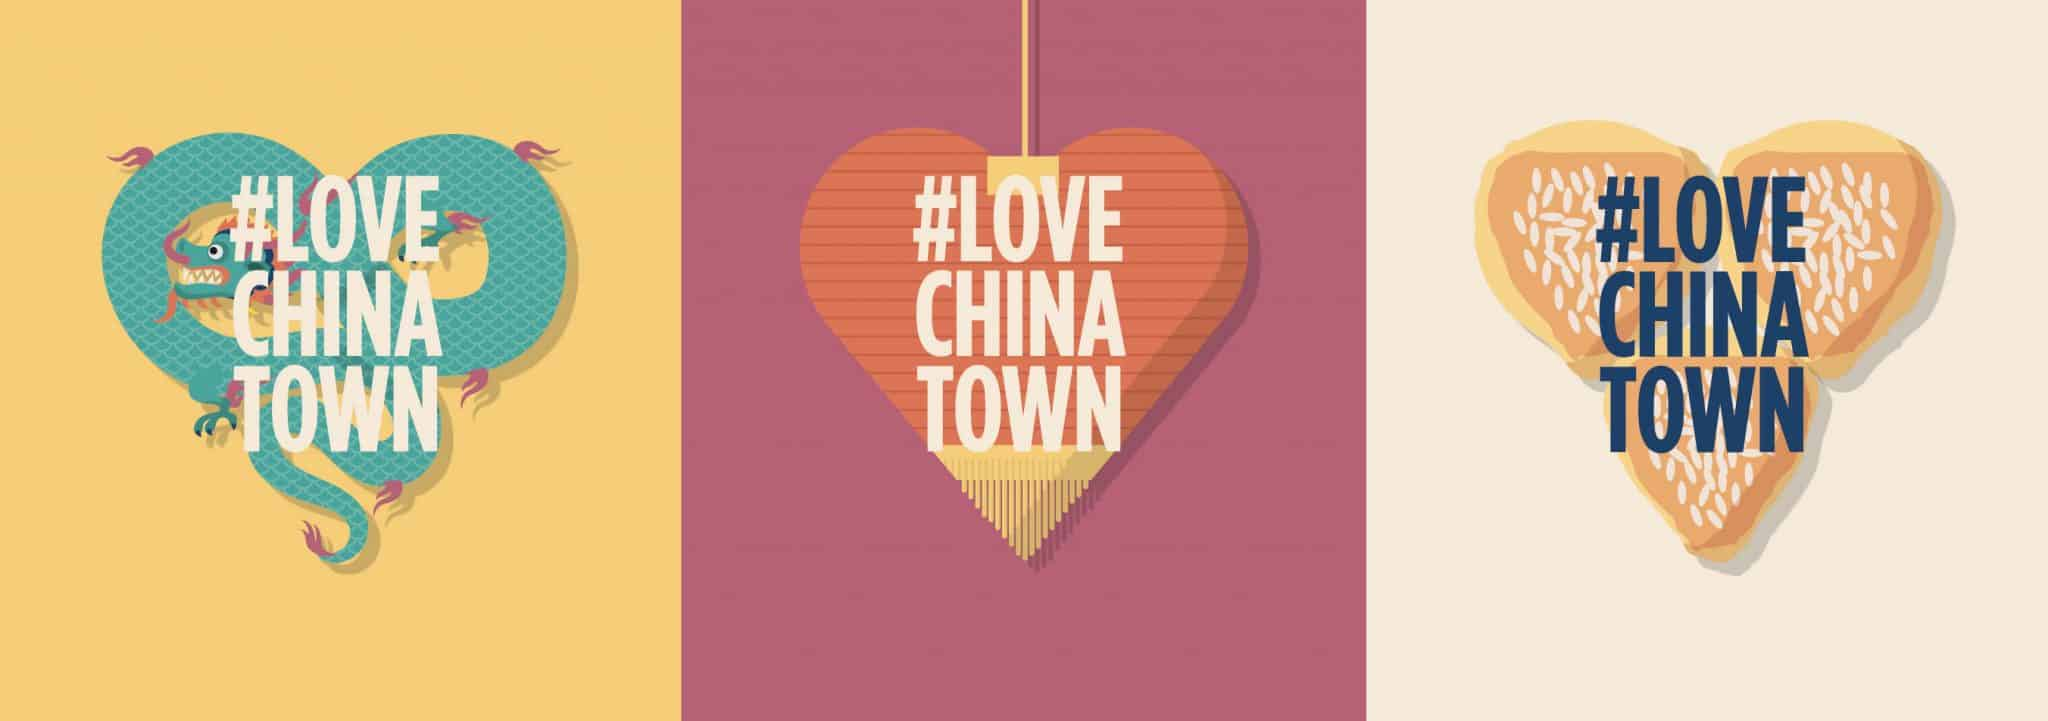 #LoveChinatown